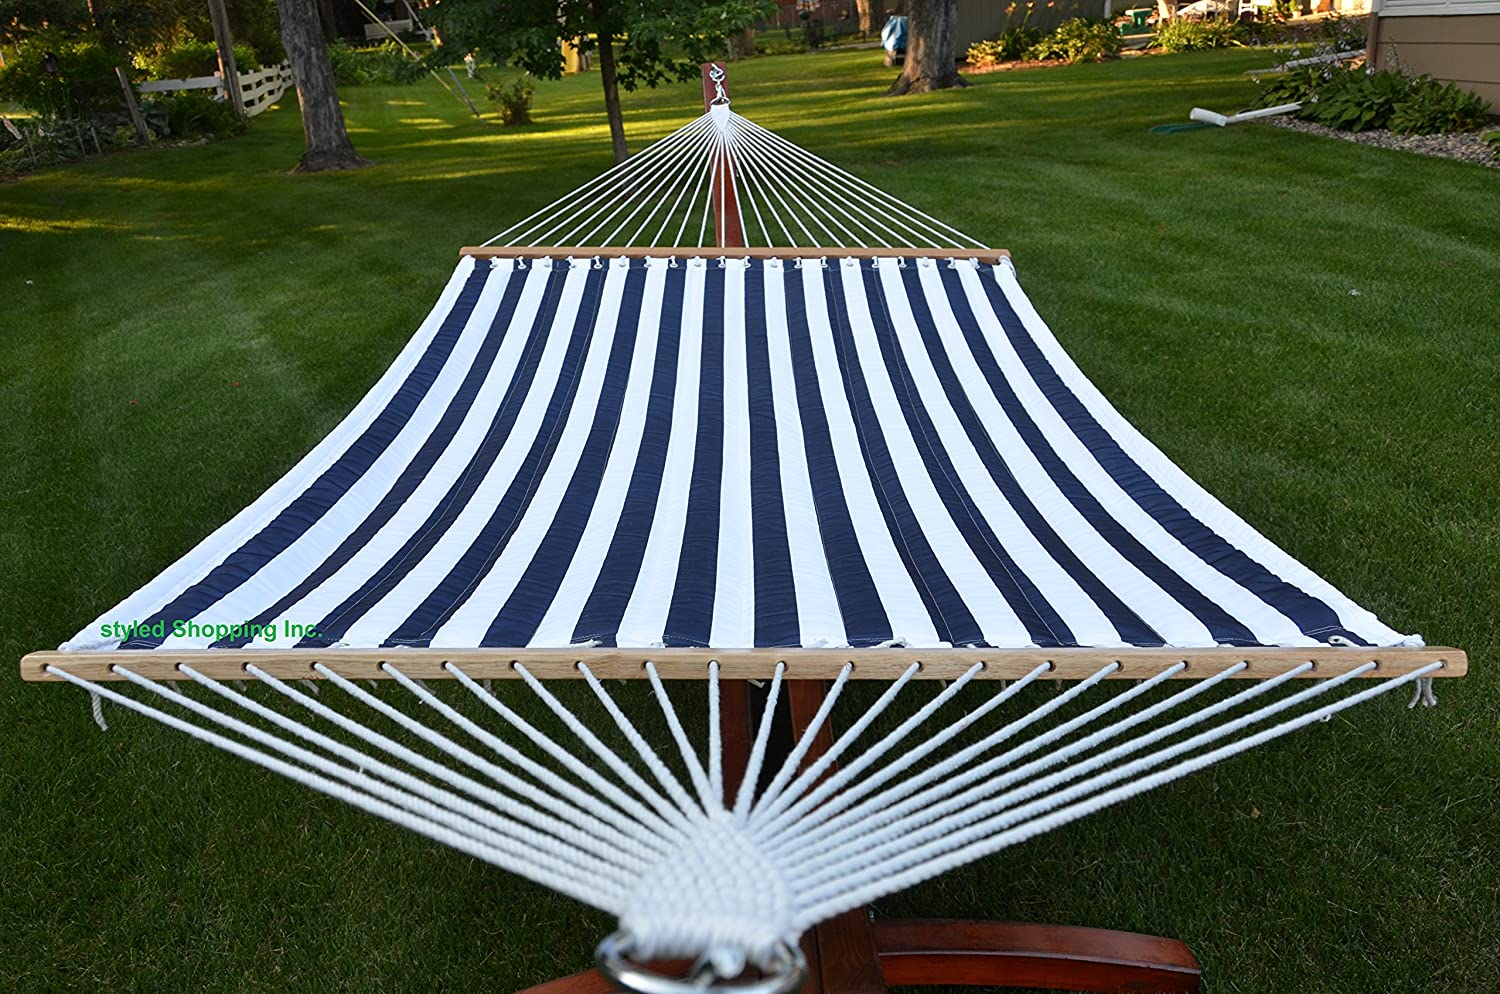 bar spreader canvas camping outdoor weight capacity large hammock garden fabric swing mat bed x double hammocks hanging portable item